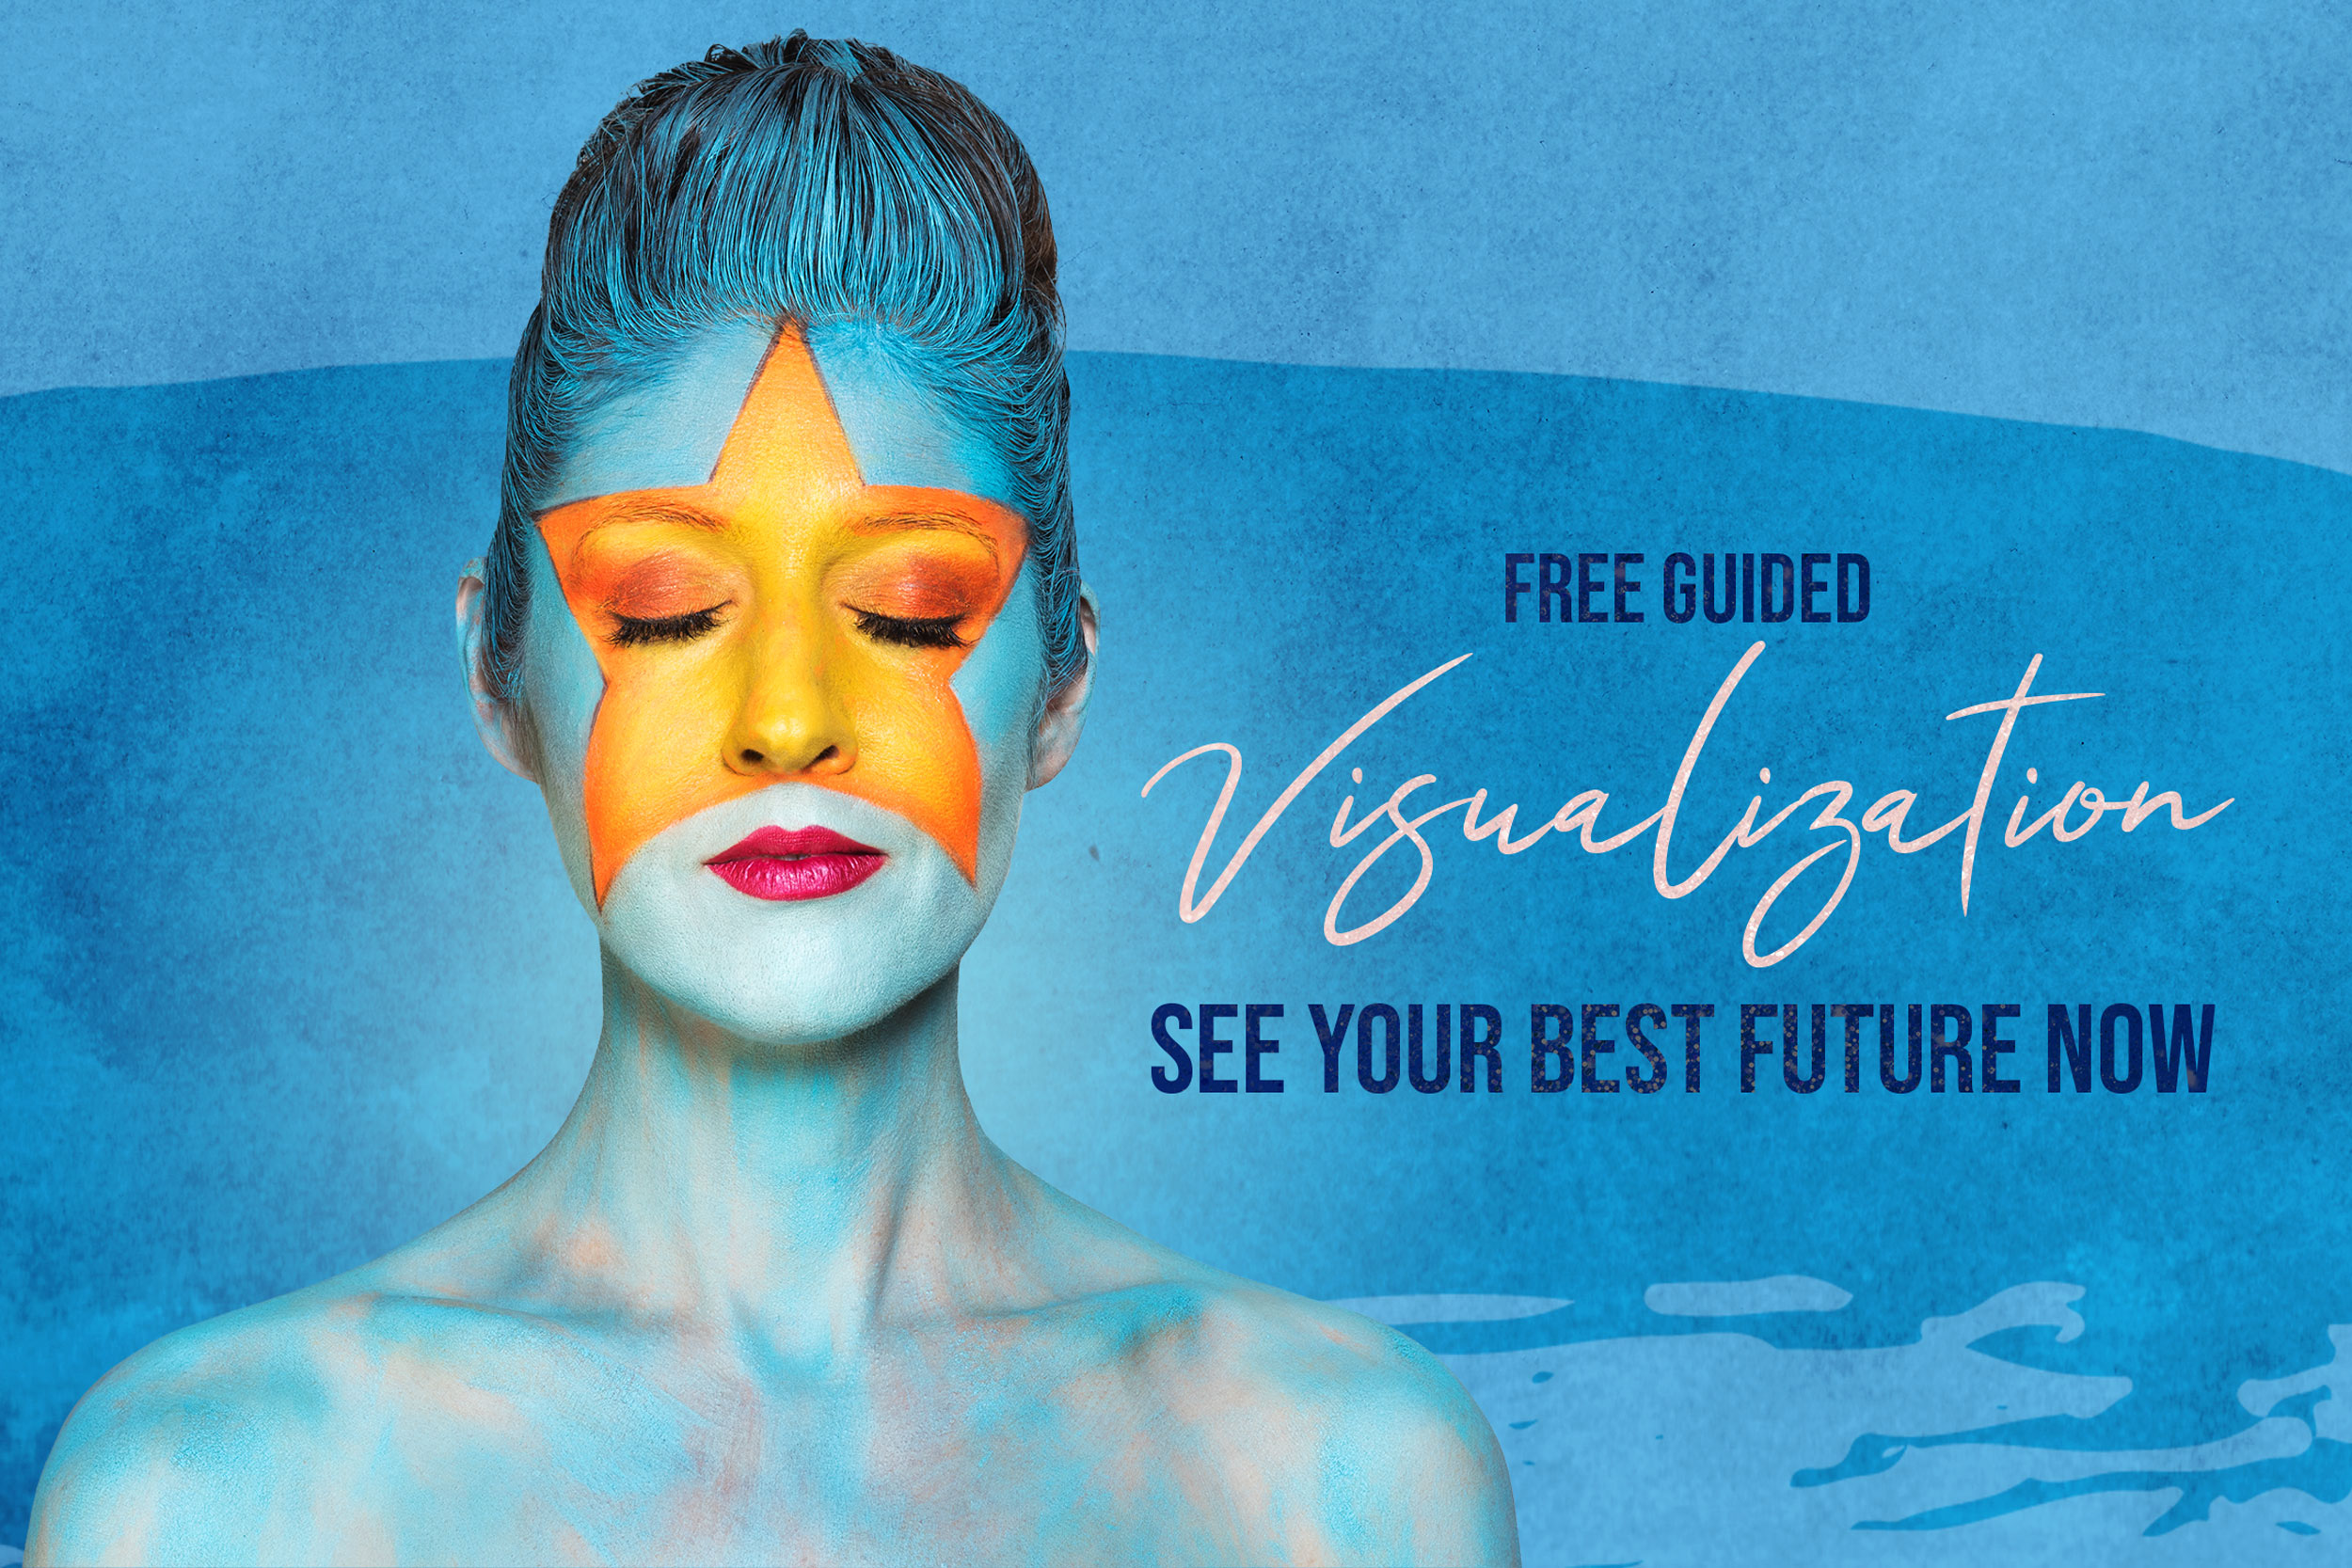 Free Guided Visualization to See Your Best Future Now